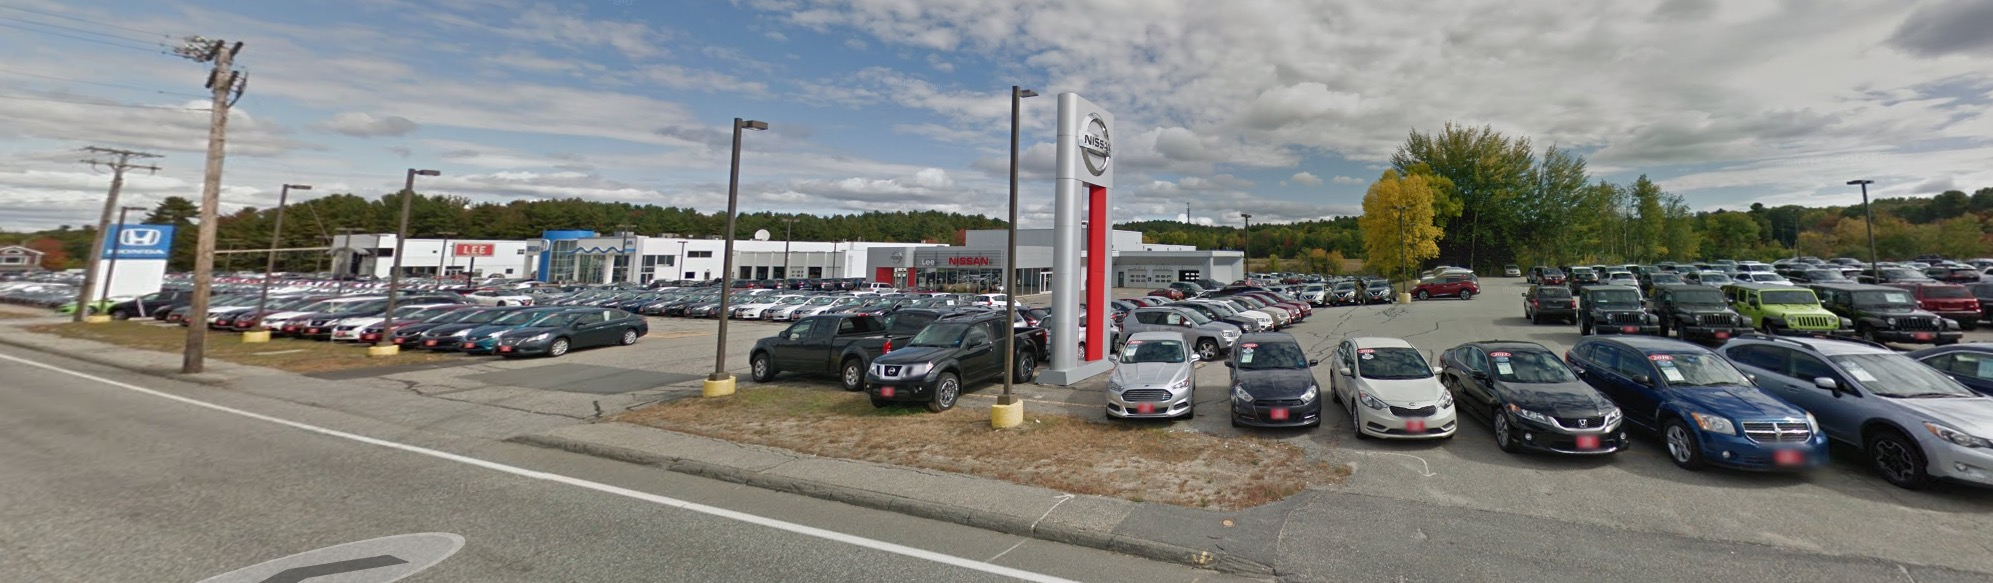 Maine Auto Mall >> About Lee Auto Mall Auburn In Auburn Me